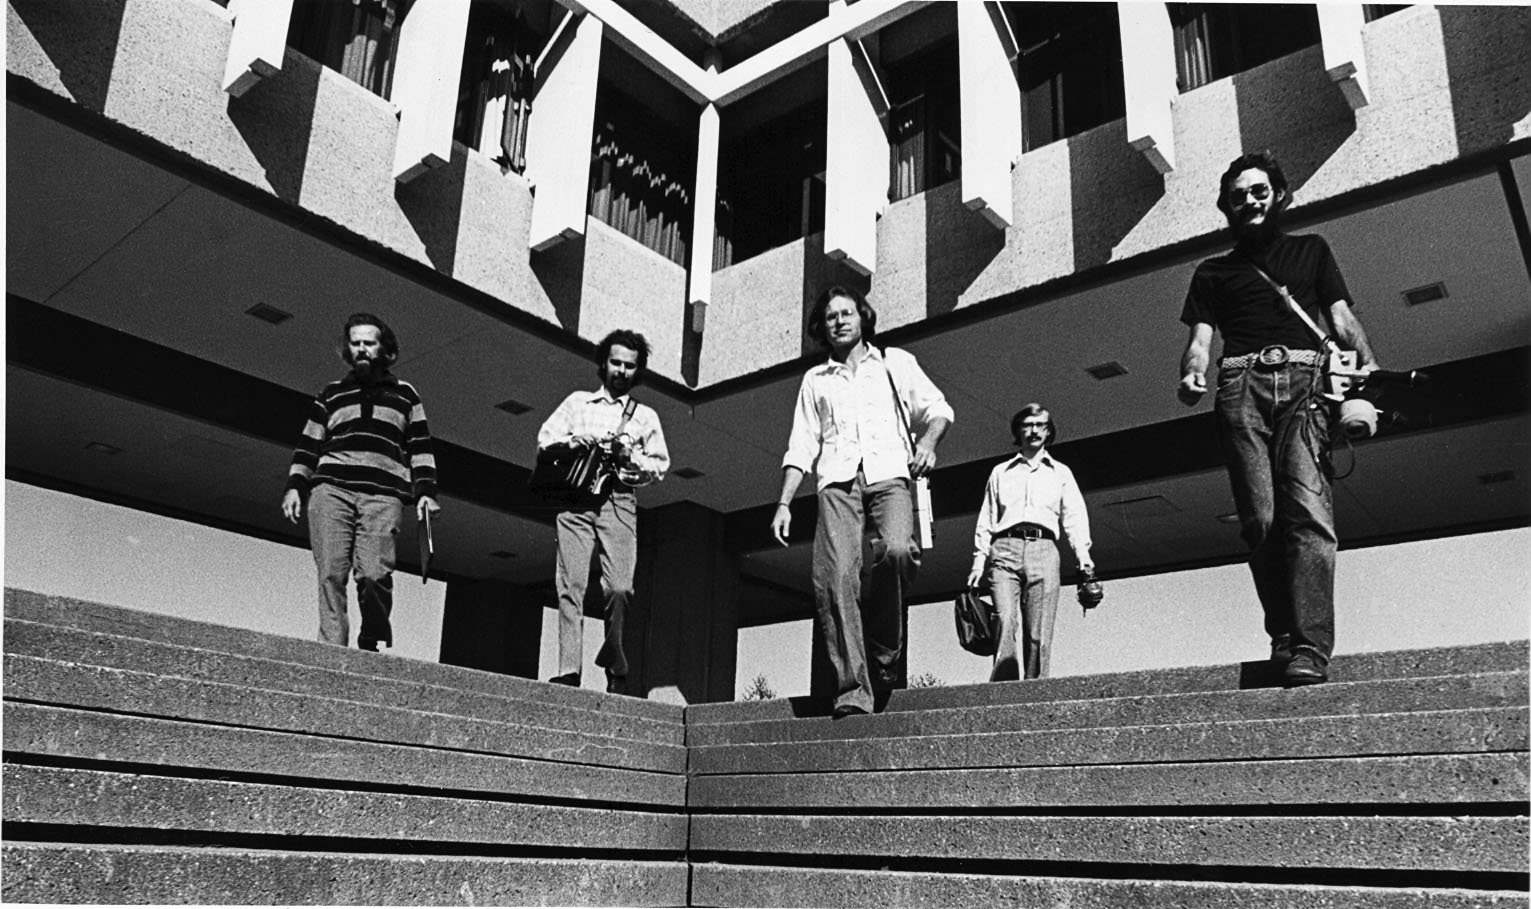 World Soundscape Project group at SFU, 1973 left to right - R. M. Schafer, Bruce Davis, Peter Huse, Barry Truax, Howard Broomfield